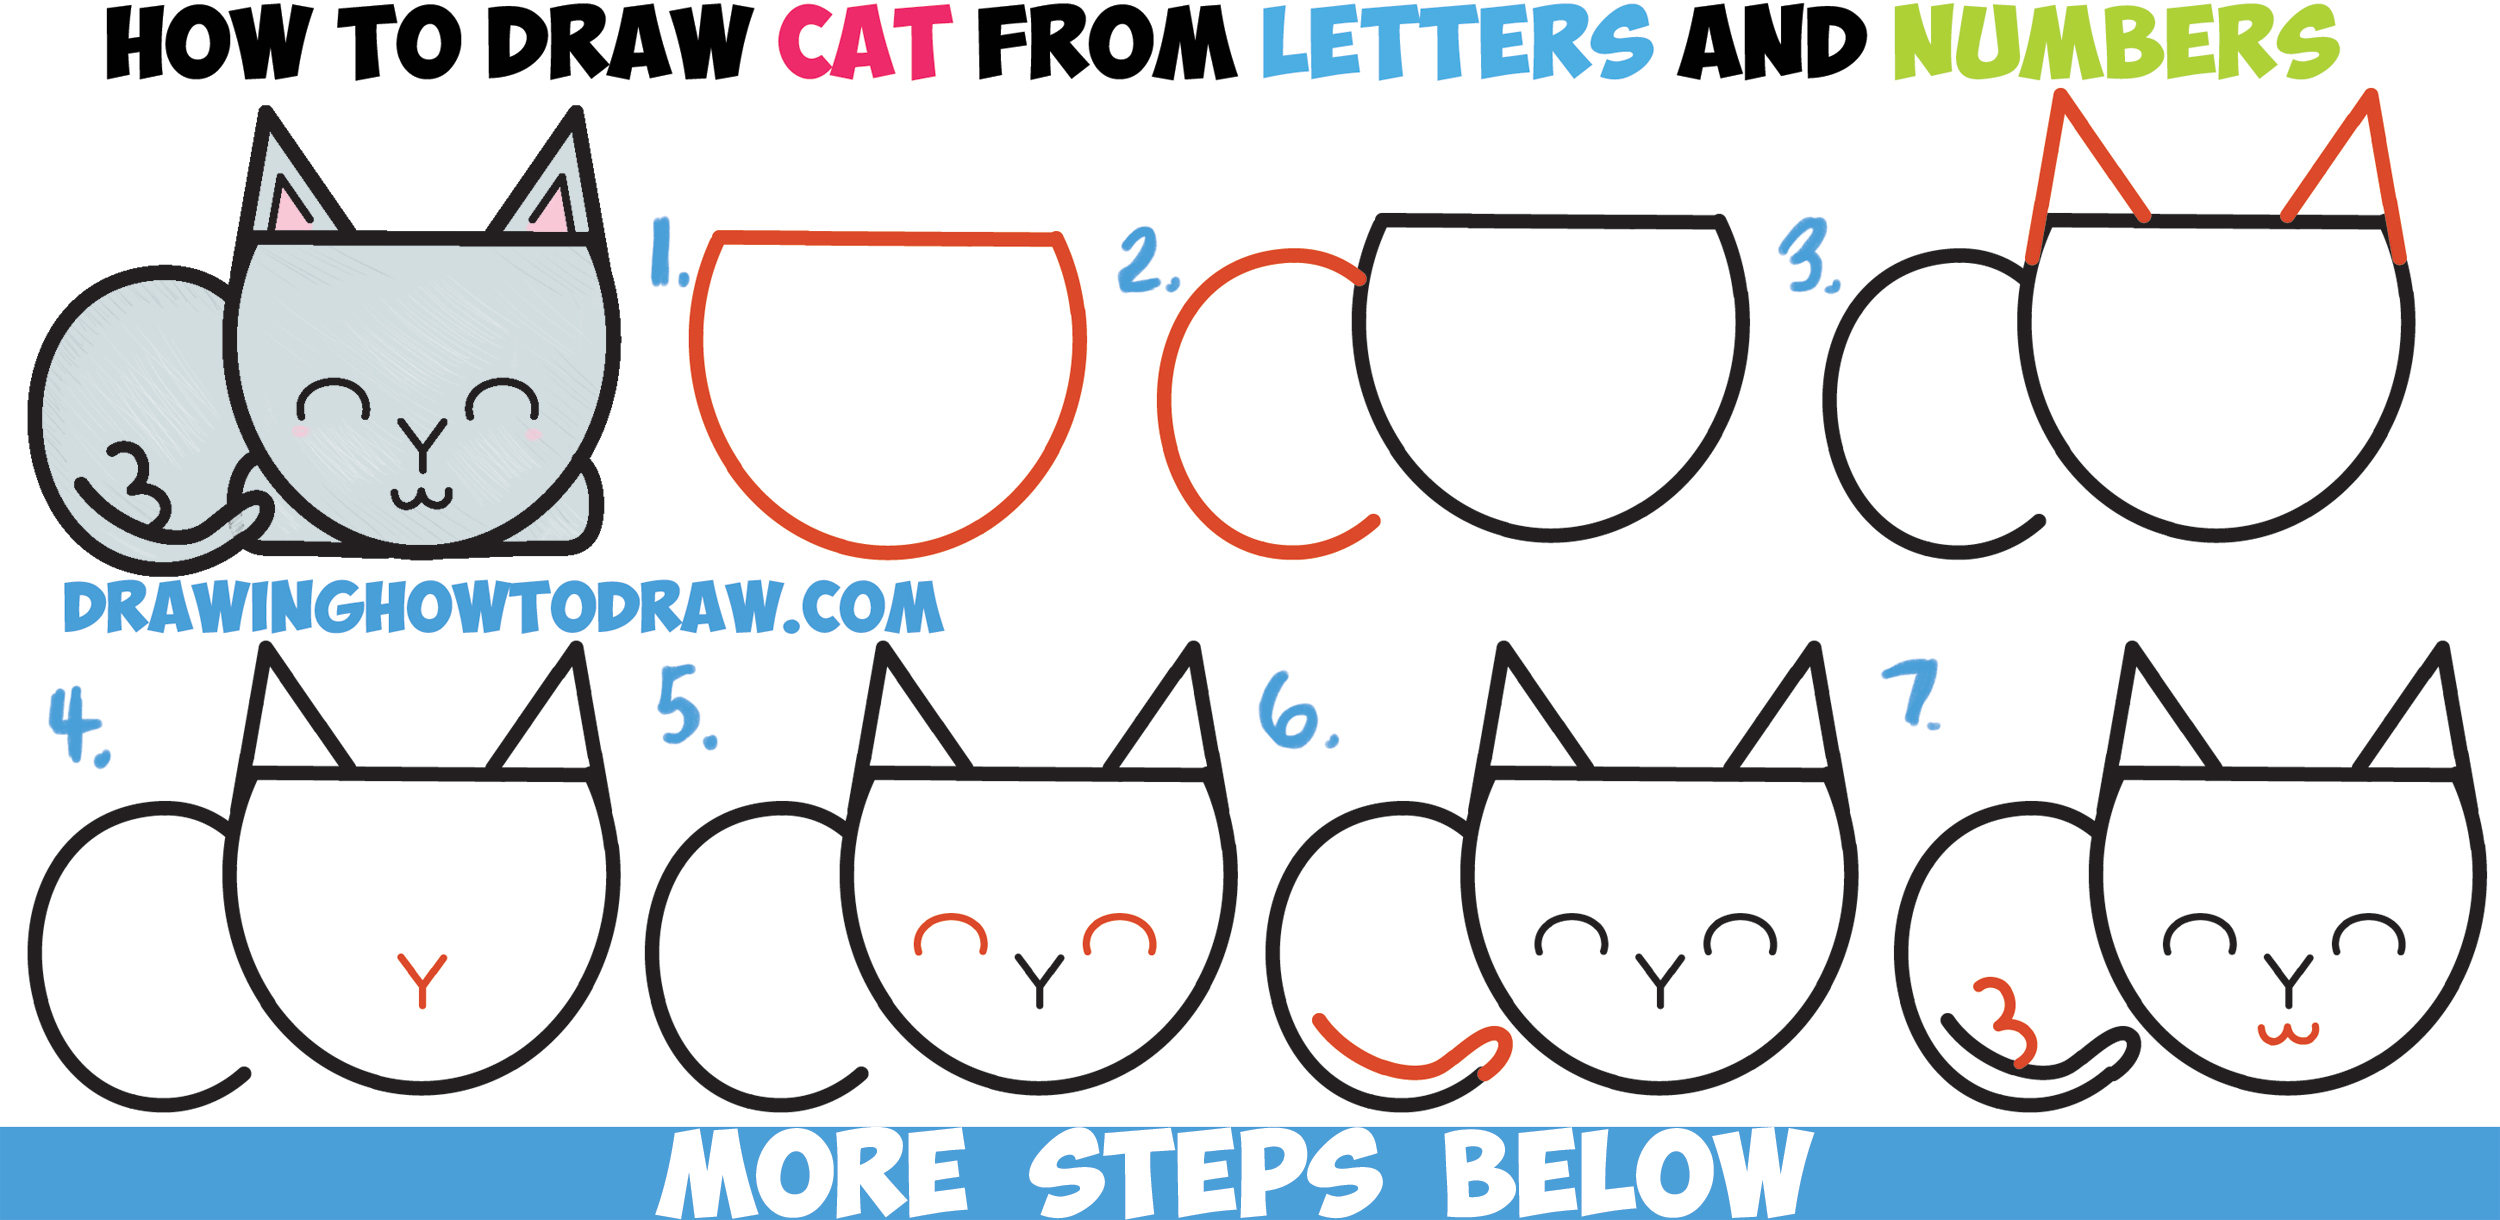 Uncategorized Steps To Draw A Cat how to draw a cute cartoon cat completely from letters numbers shapes easy